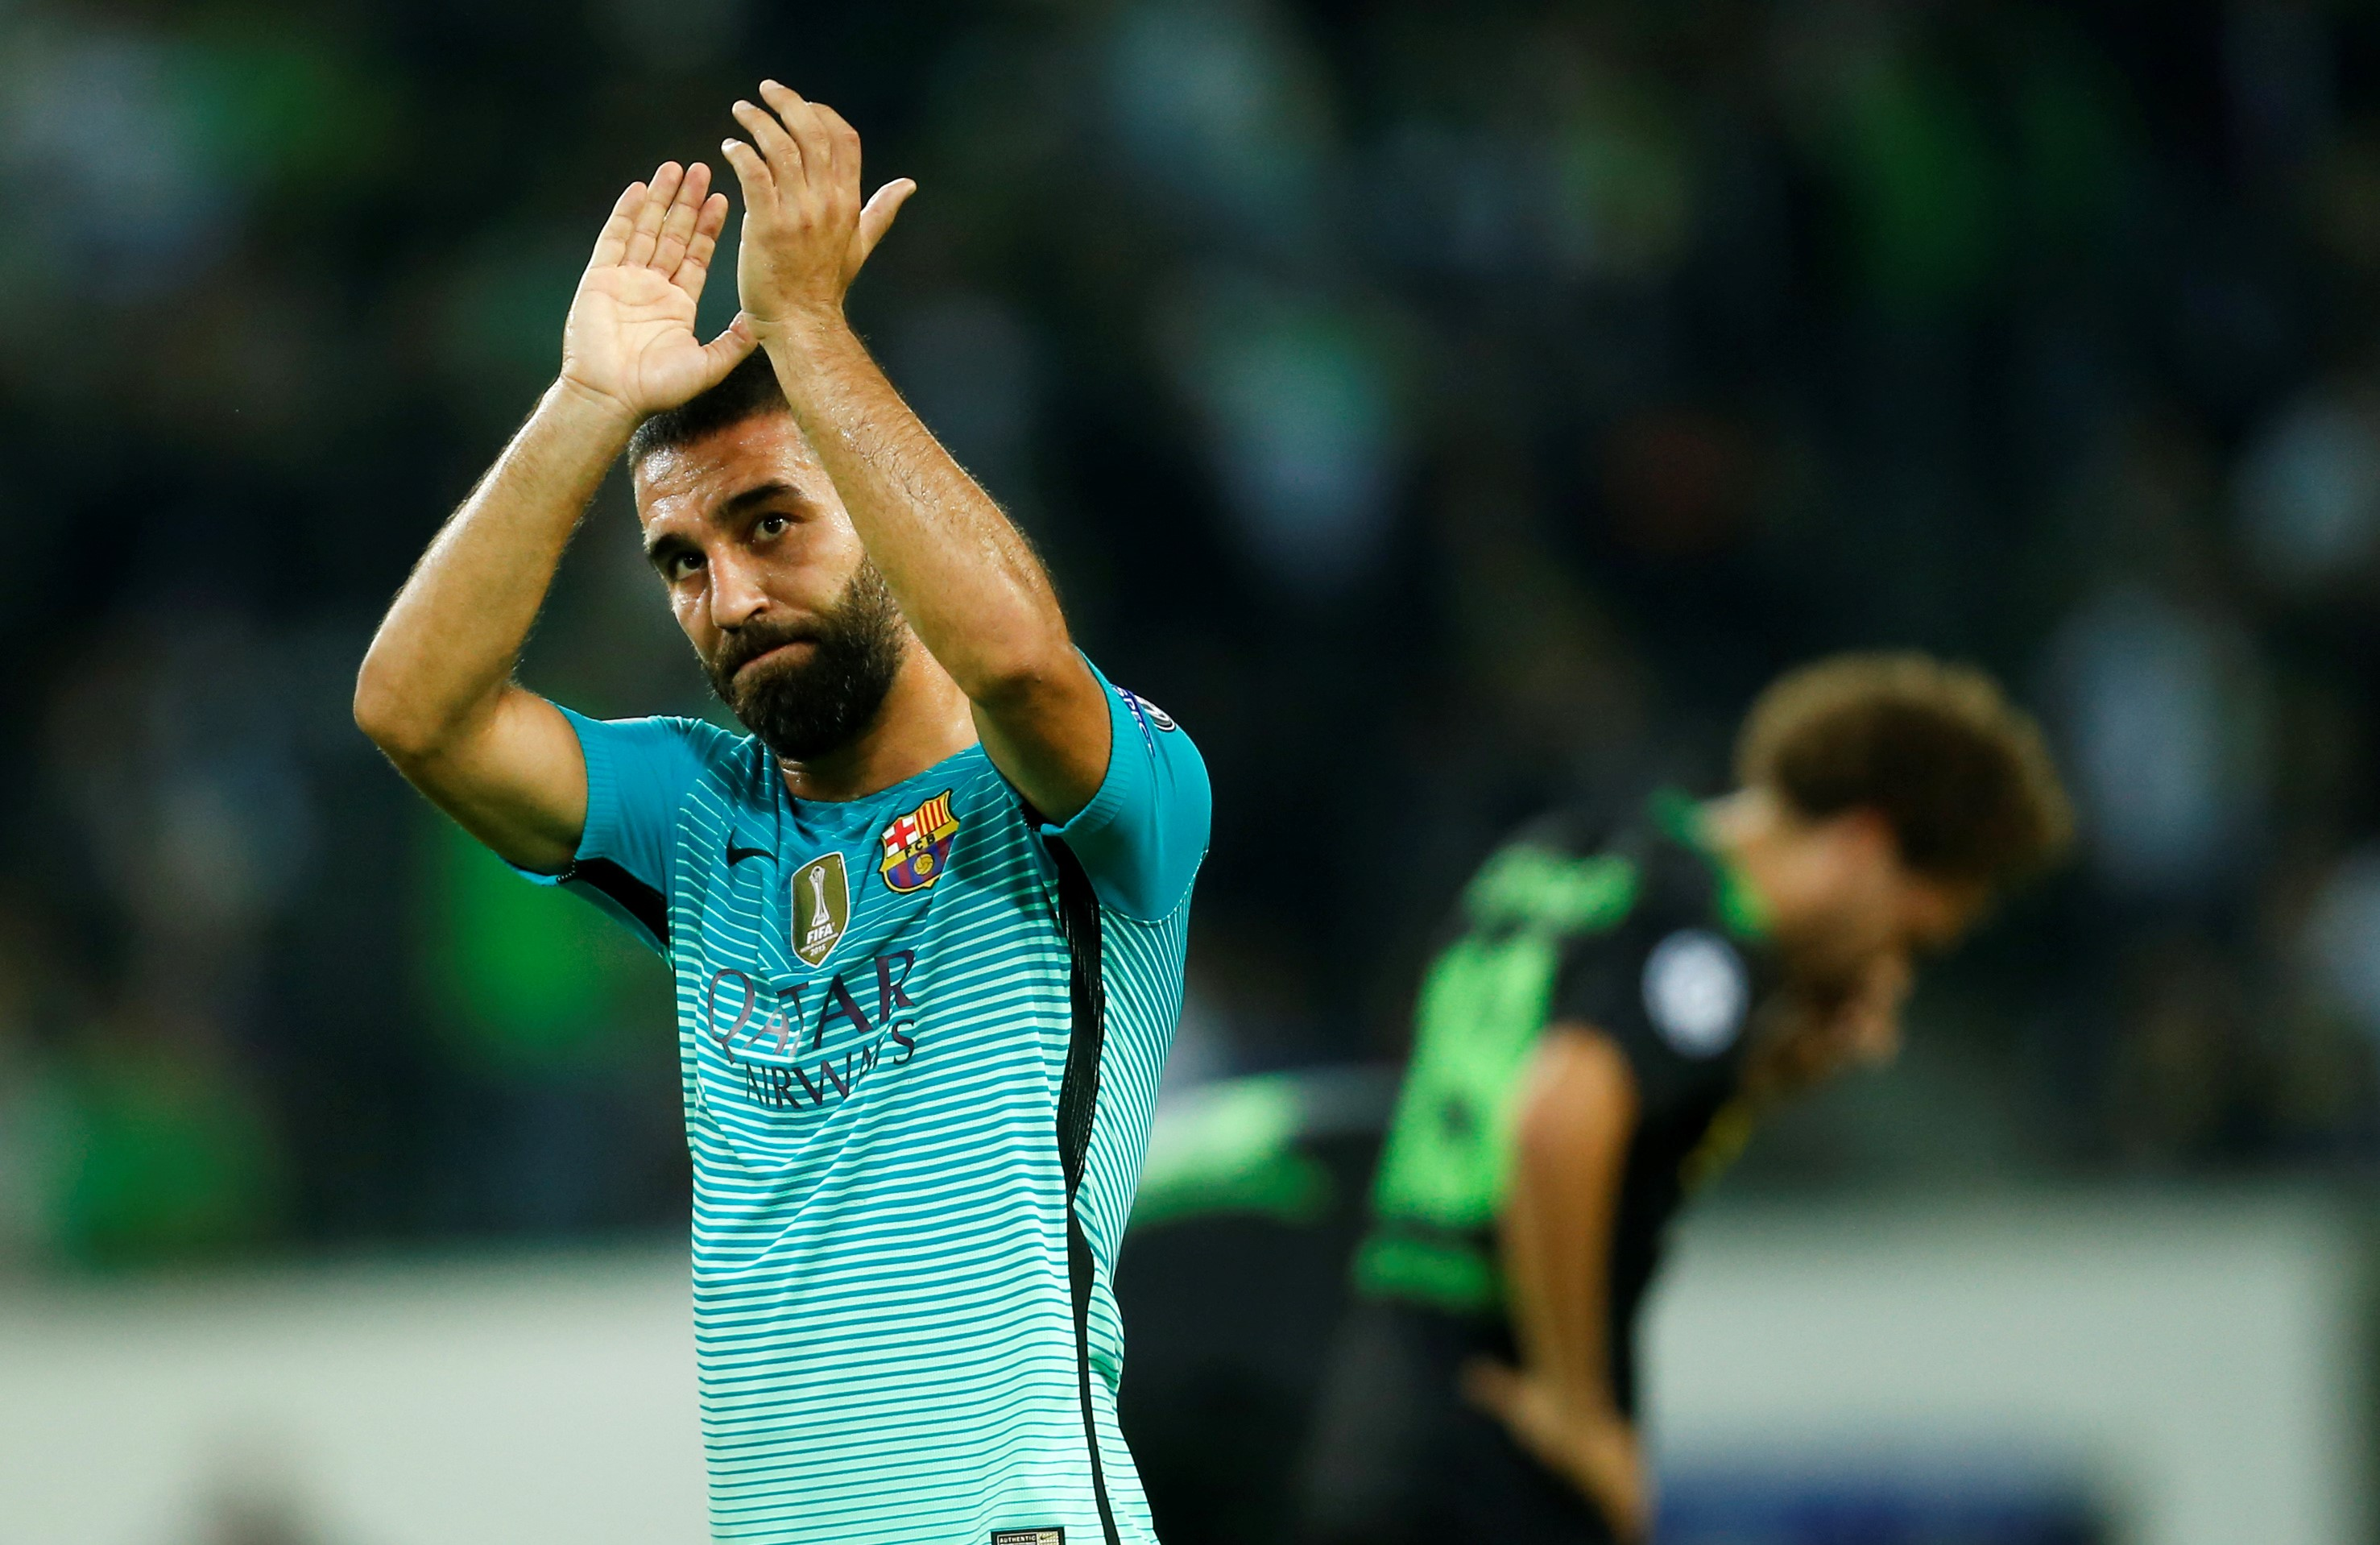 Arsenal face Besiktas competition for transfer of Barcelona's Arda Turan